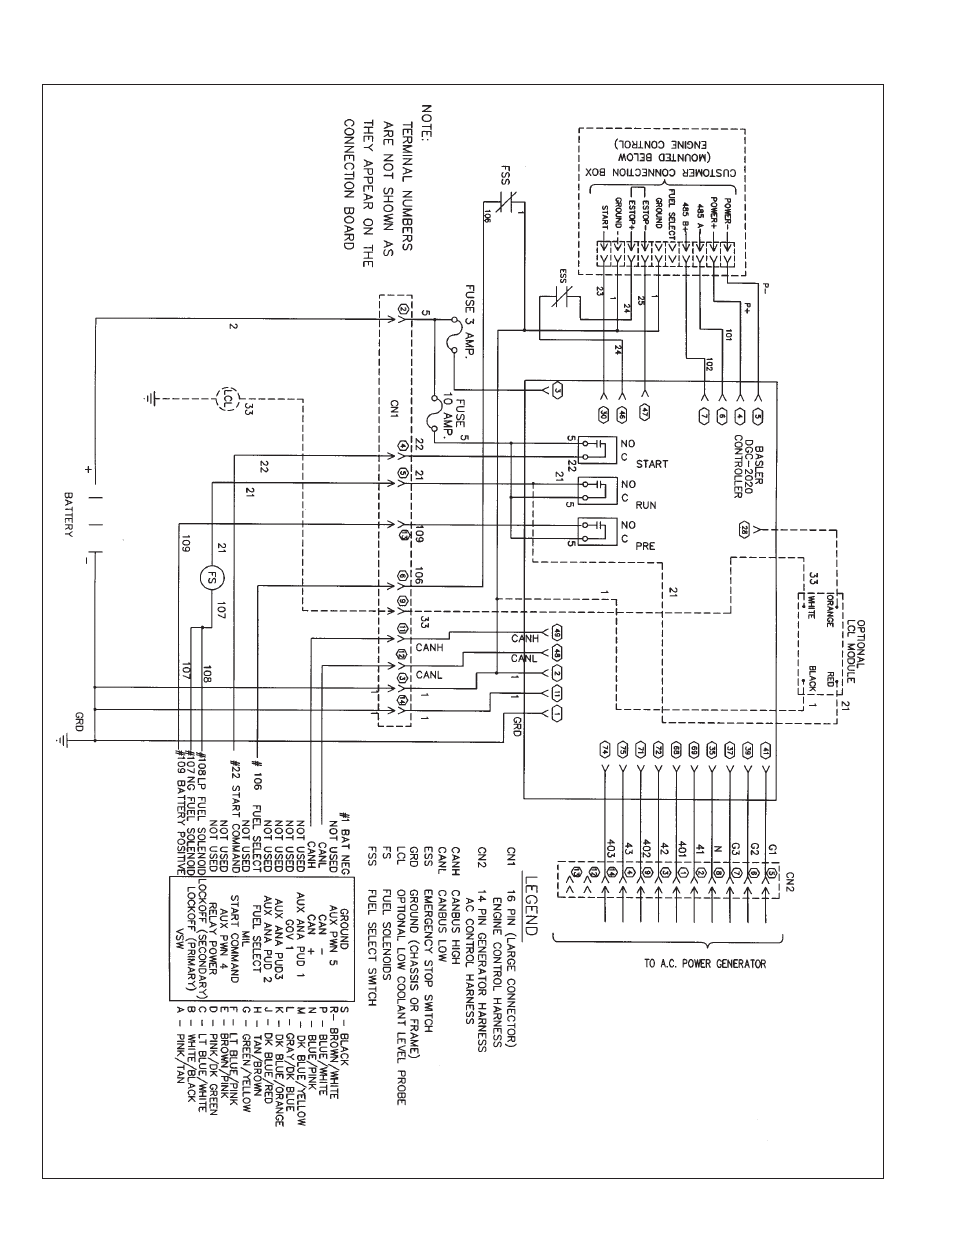 Basler Generator Wiring Diagram Real 6 Volt Schematic Winco Stamford Newage Voltage Regulator Home